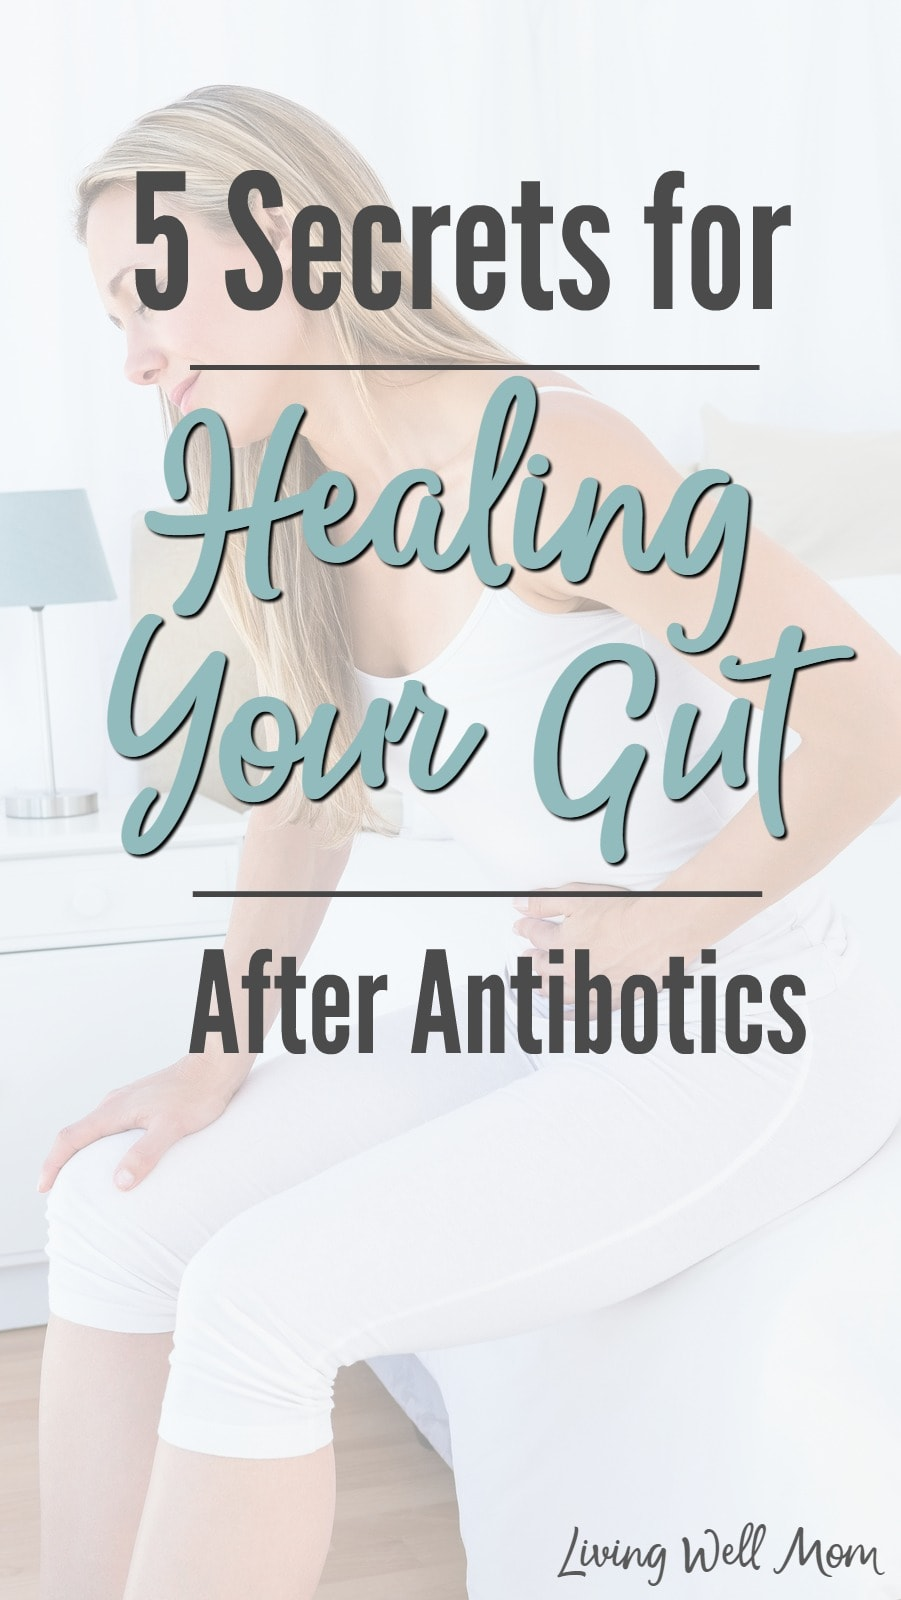 5 secrets to healing your gut after taking antibiotics, including the one thing you MUST do while taking your medication. By following these tips, you can help boost your immune system and stay healthy.